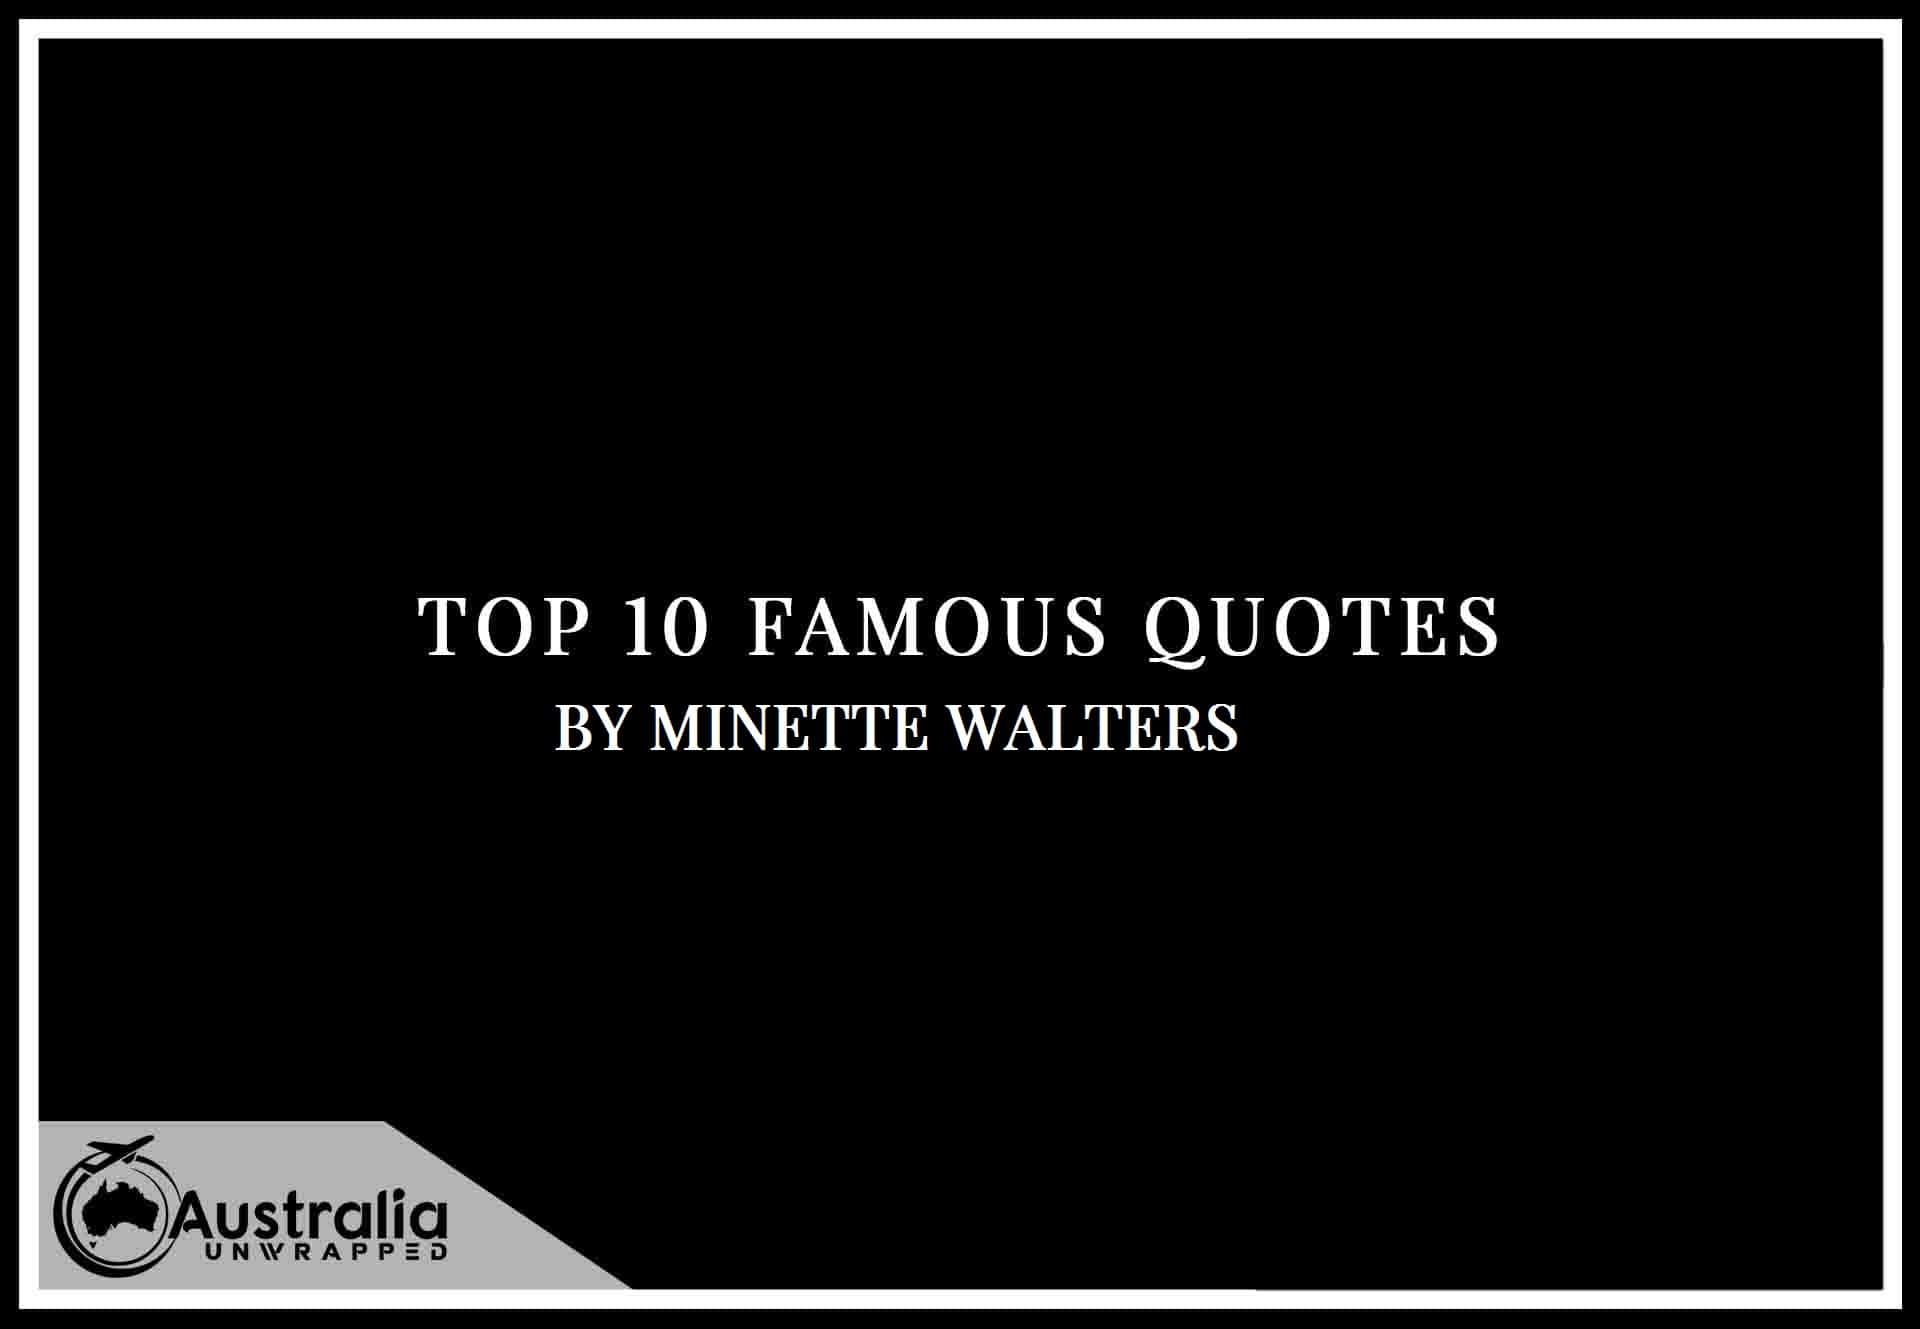 Minette Walters's Top 10 Popular and Famous Quotes